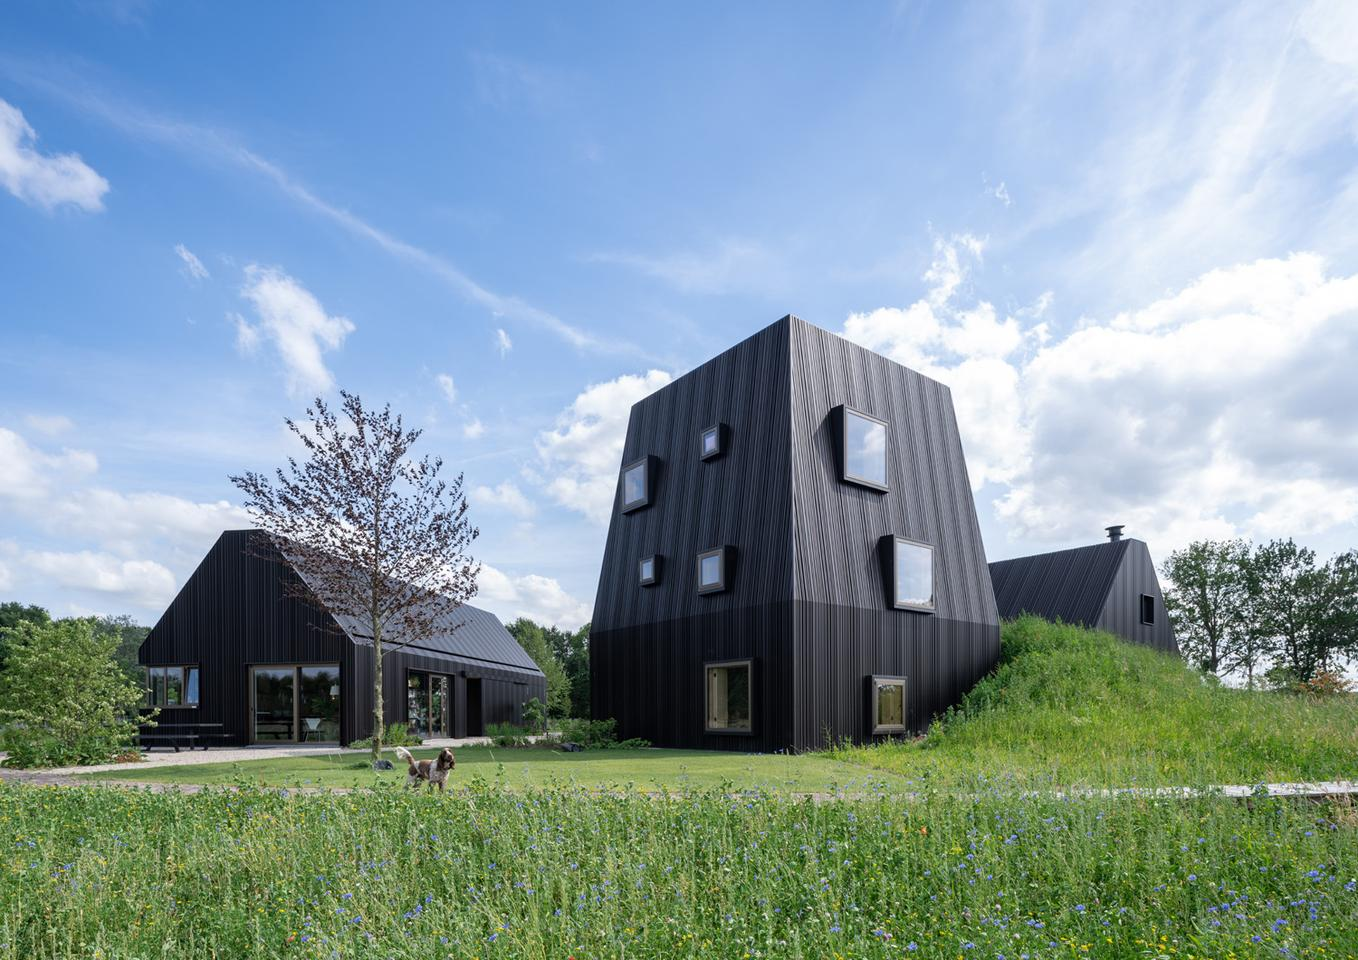 International architectural firm Mecanoo has recently finished a three-part villa in the Netherlands that reinvents the traditional Dutch barn-house